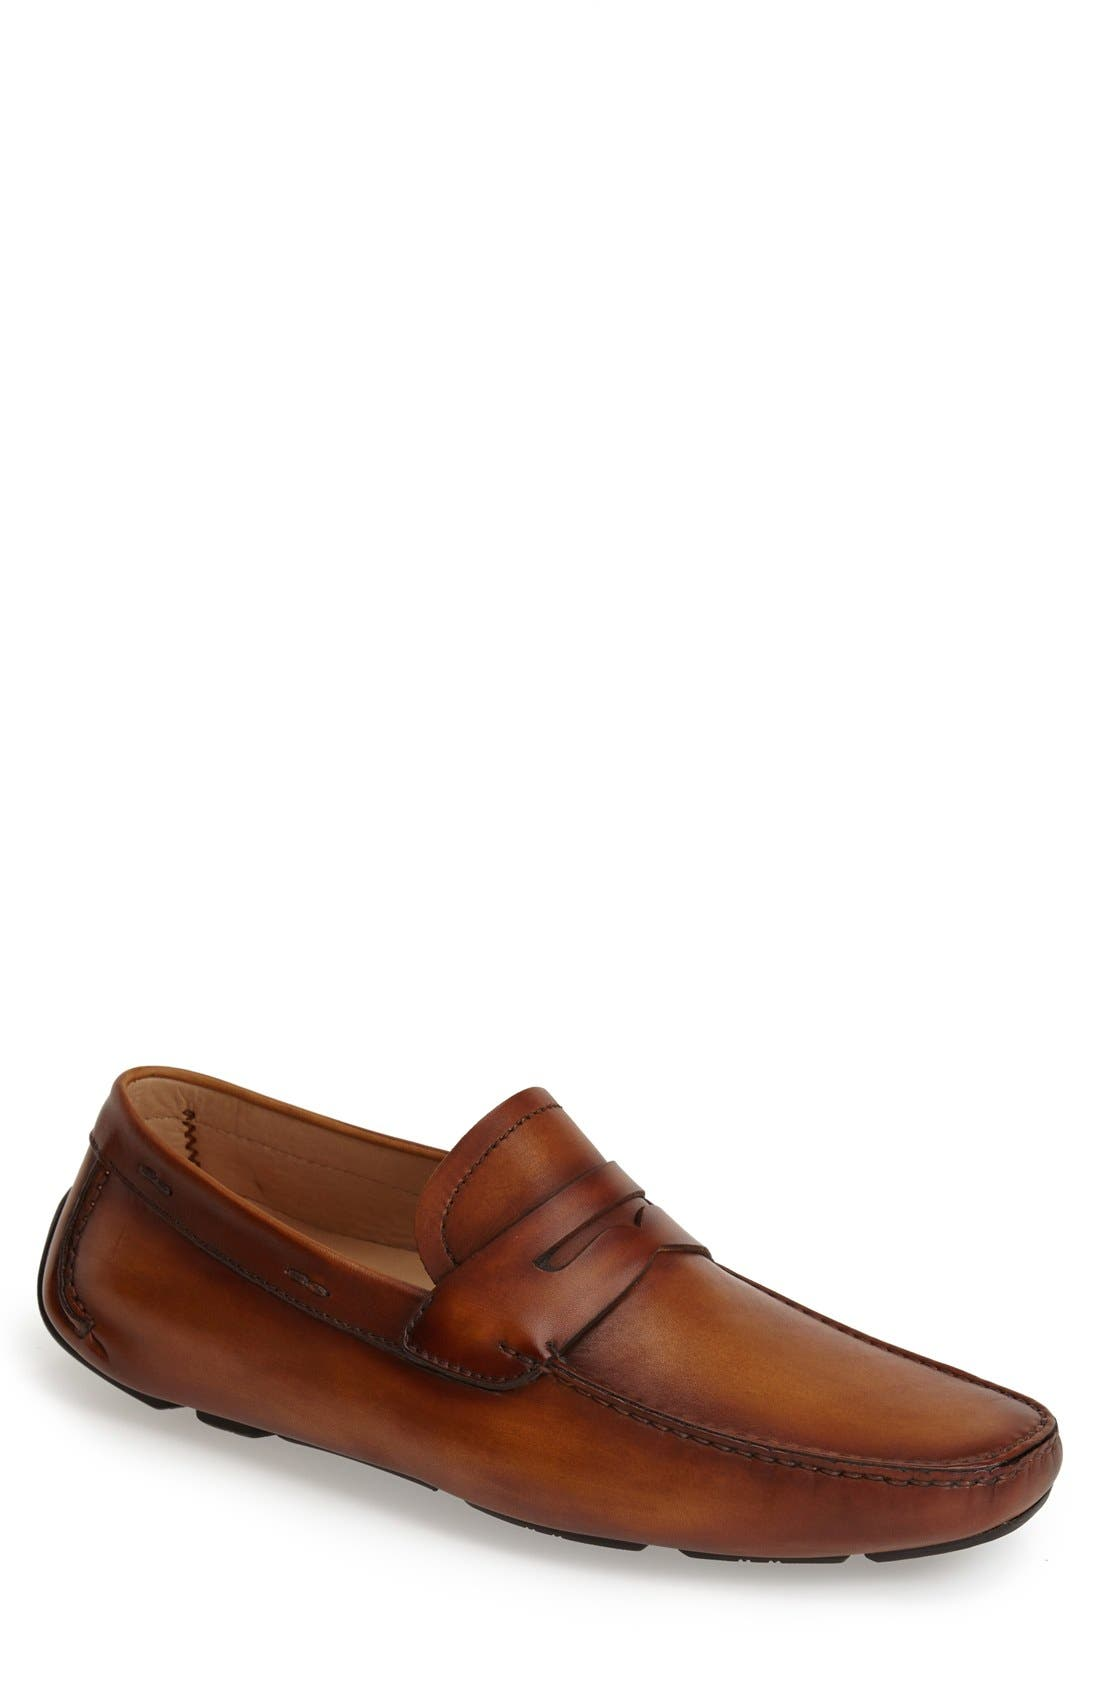 'Dylan' Leather Driving Shoe,                         Main,                         color, Cognac Leather